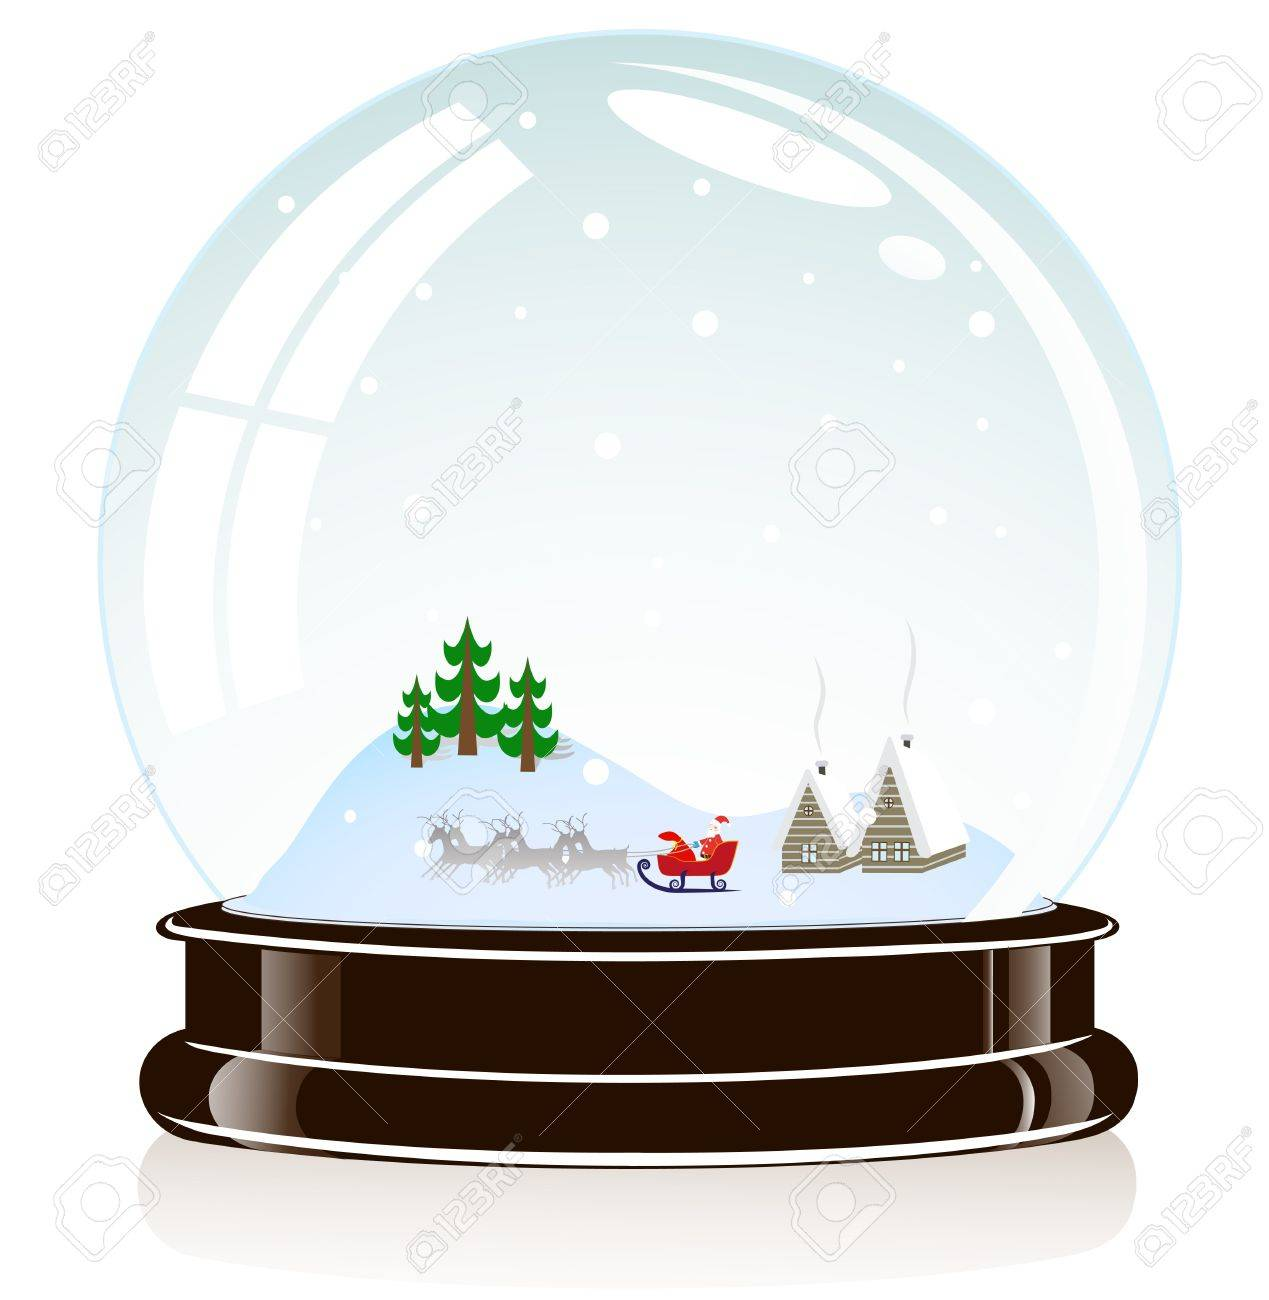 on the image the sphere a Christmas toy is presented Stock Vector - 16691014